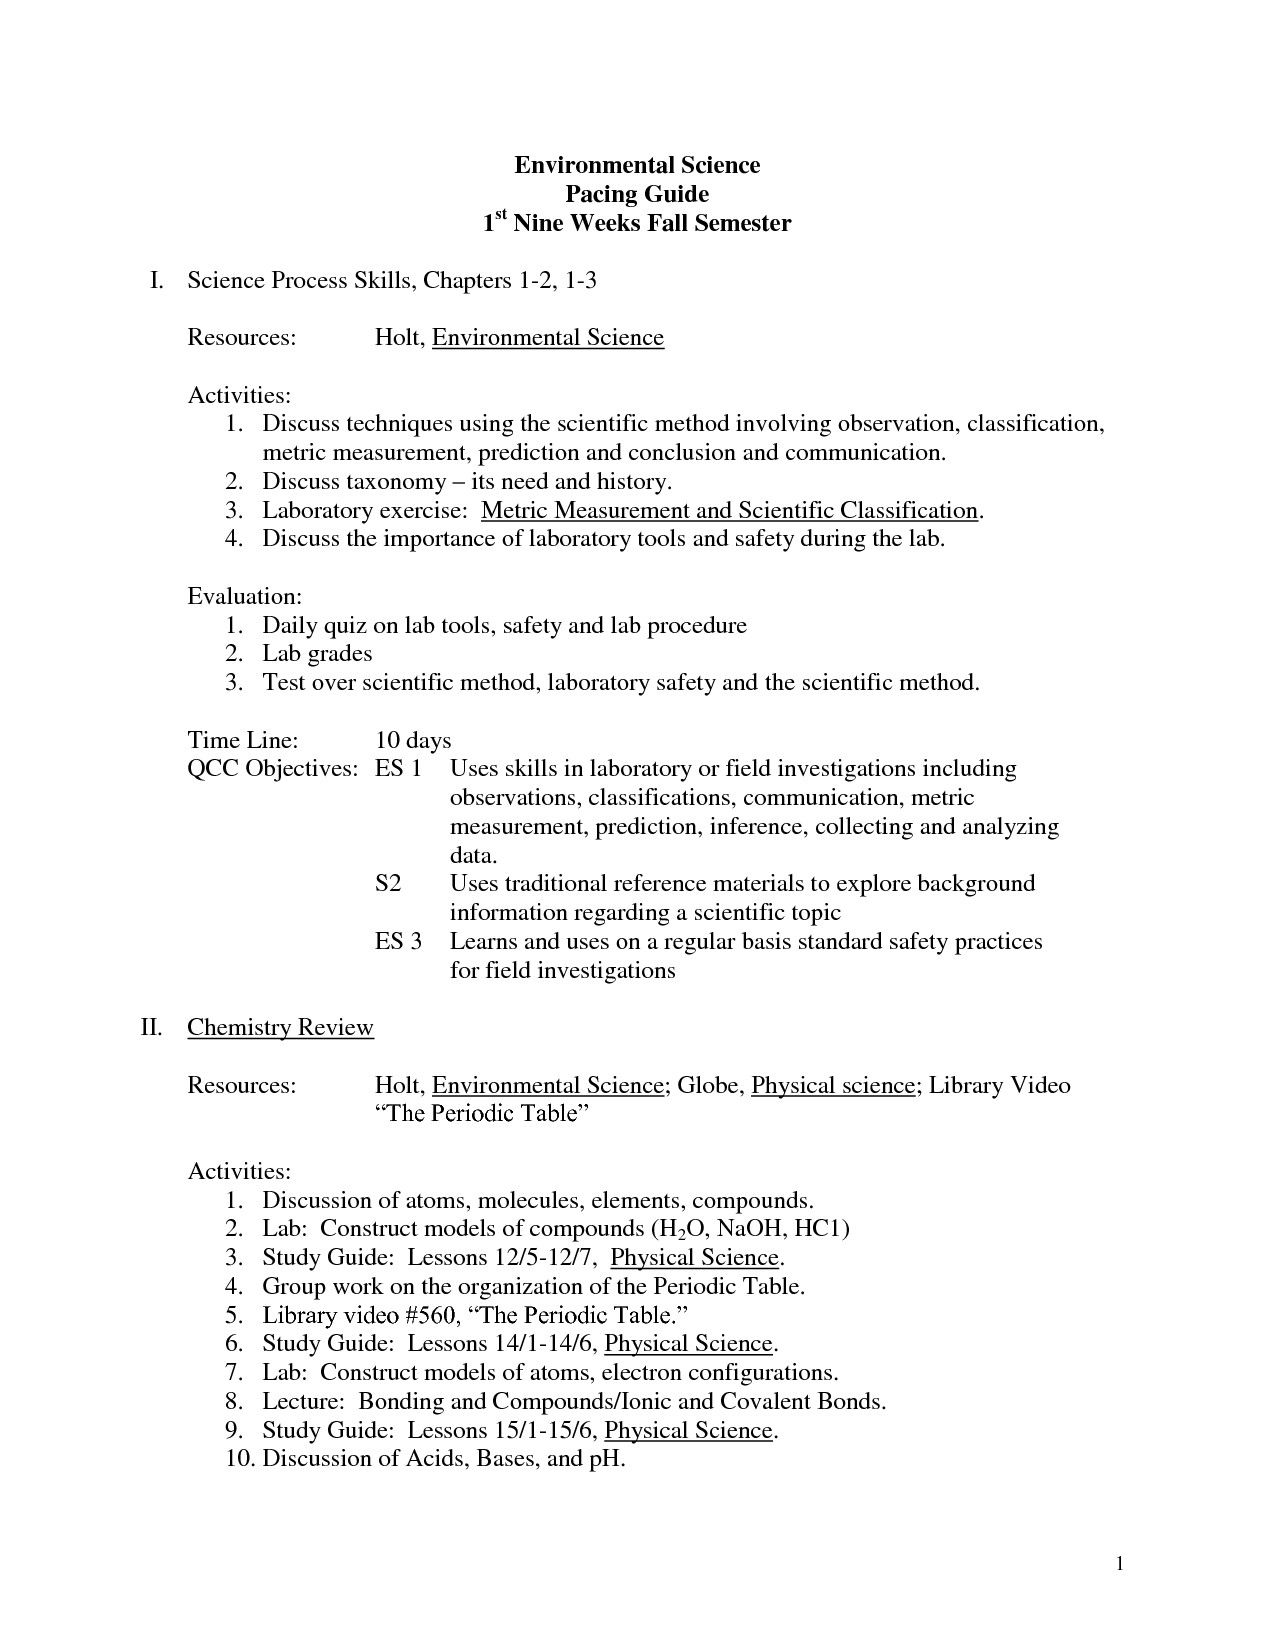 Skills Worksheet Concept Review Environmental Science